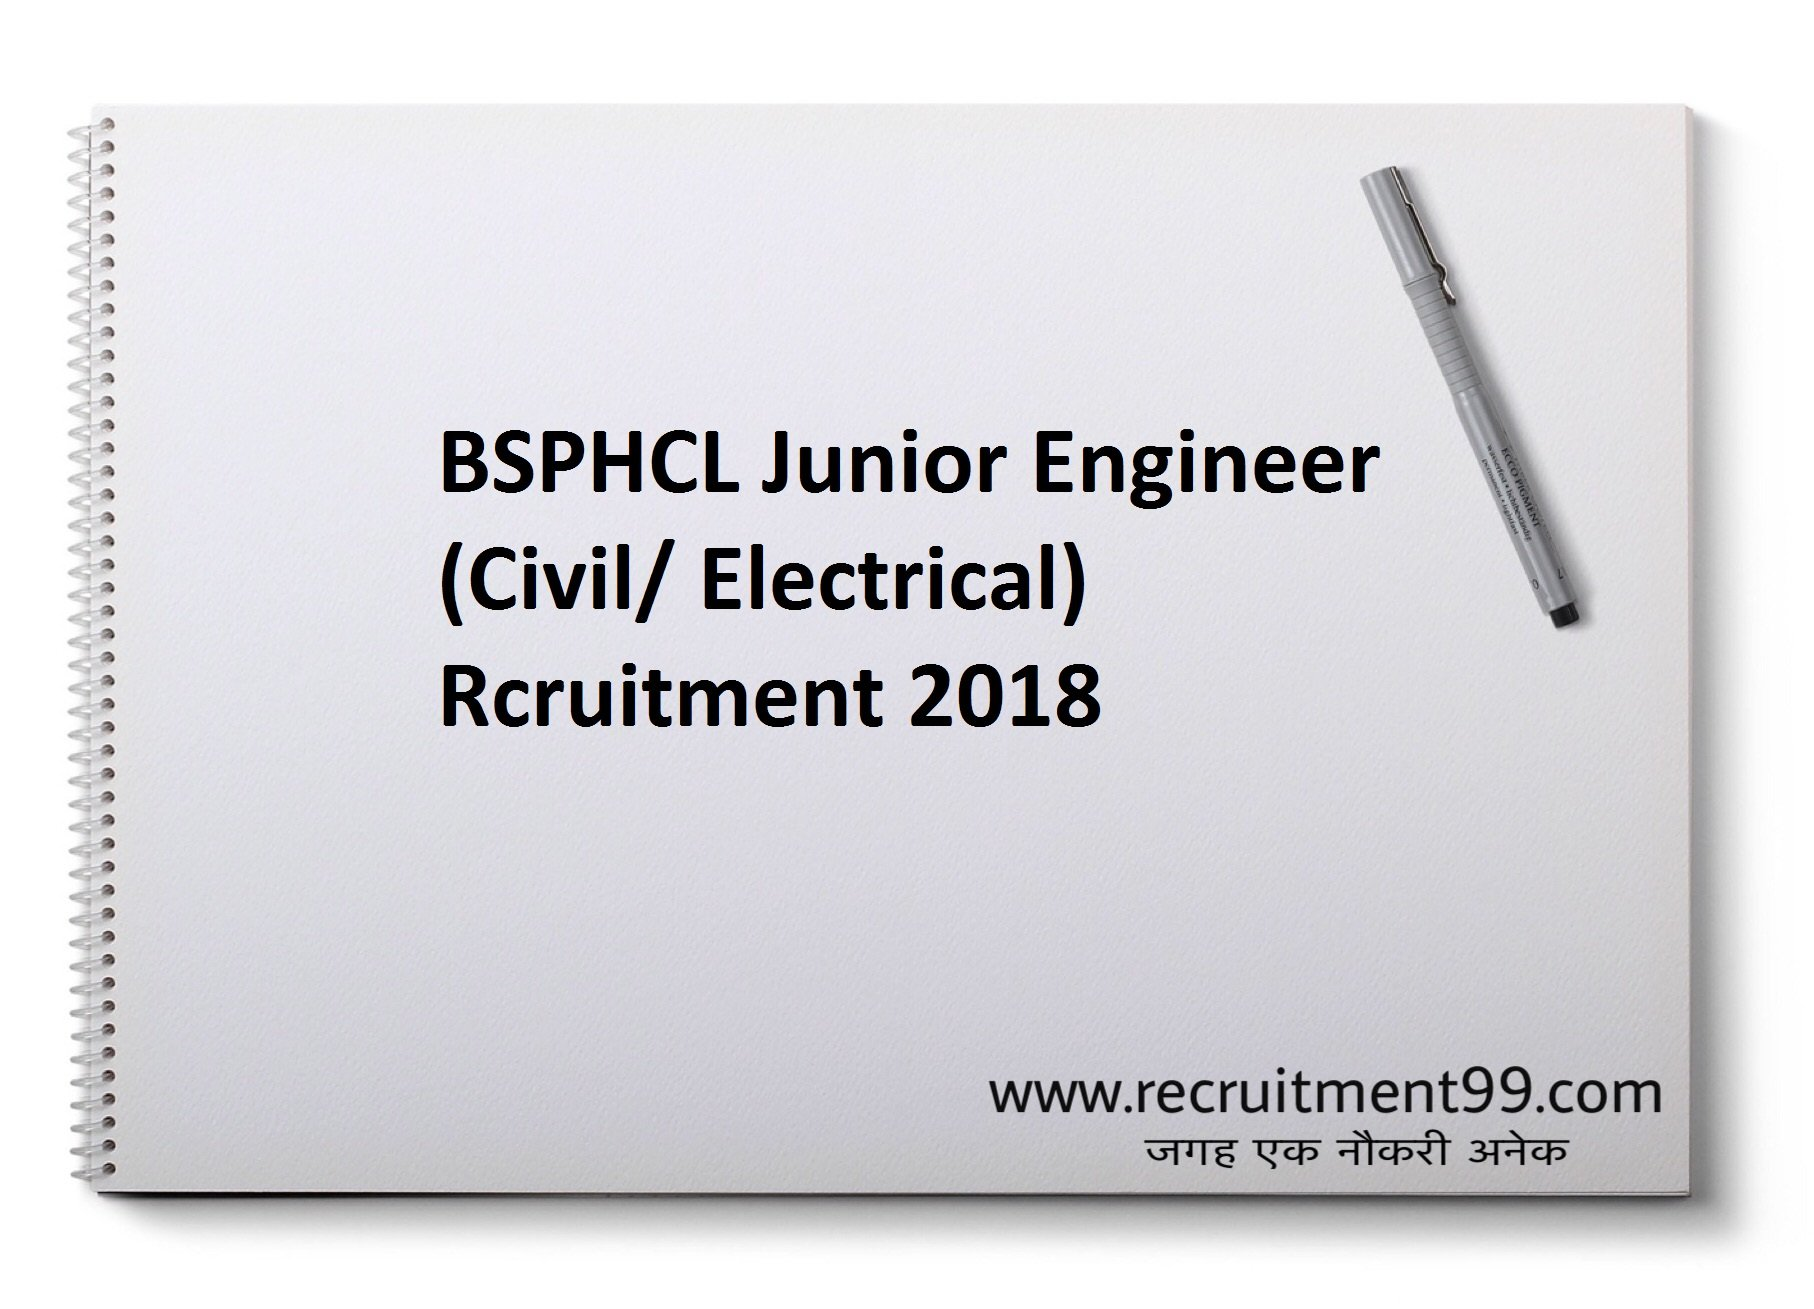 BSPHCL Junior Engineer JE Recruitment Admit Card Result 2018